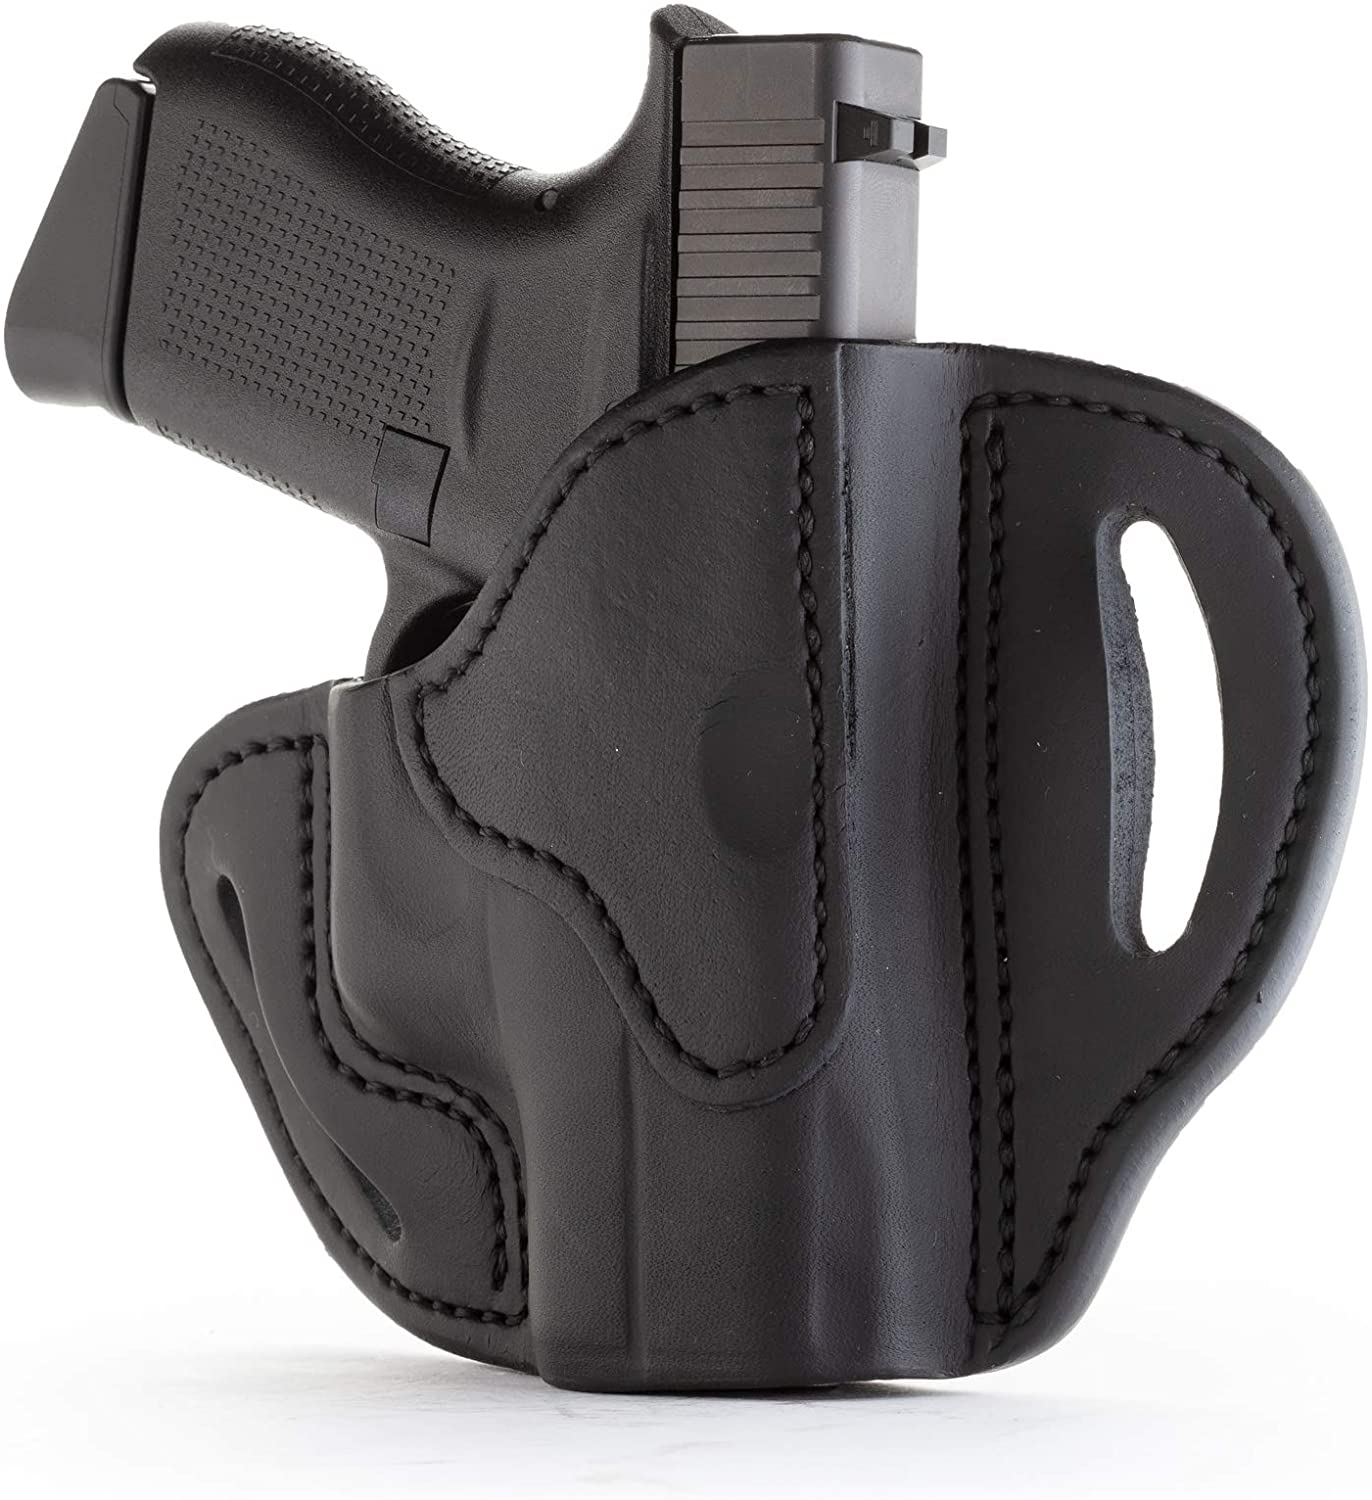 The 1791 Gunleather Glock 43 Holster